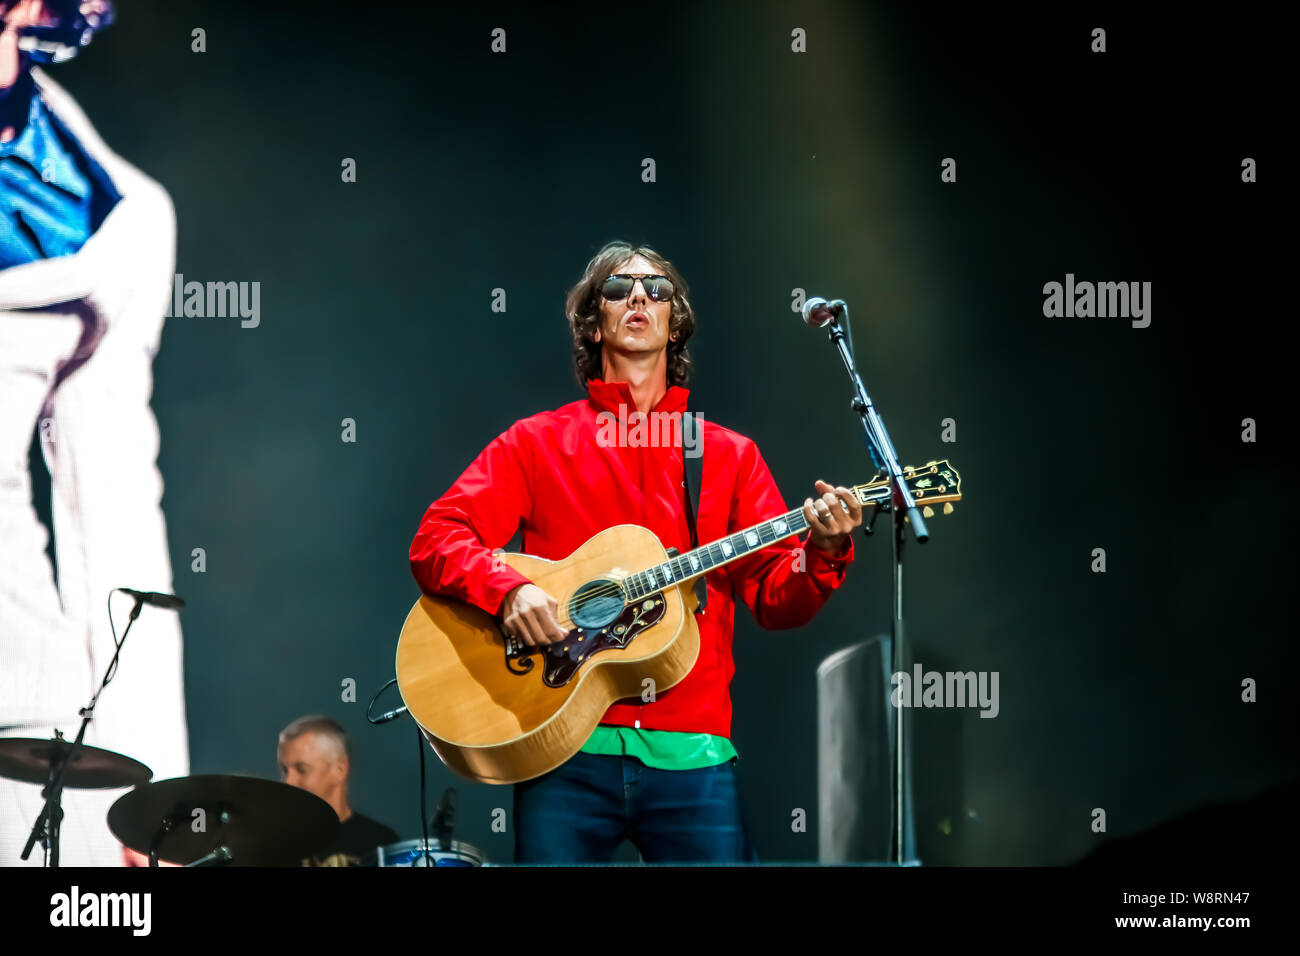 Richard Ashcroft, English singer and songwriter, previously leader of the band The Verve, performed on the main stage of Sziget Festival during the second day of the event. (Photo by Luigi Rizzo / Pacific Press) Stock Photo